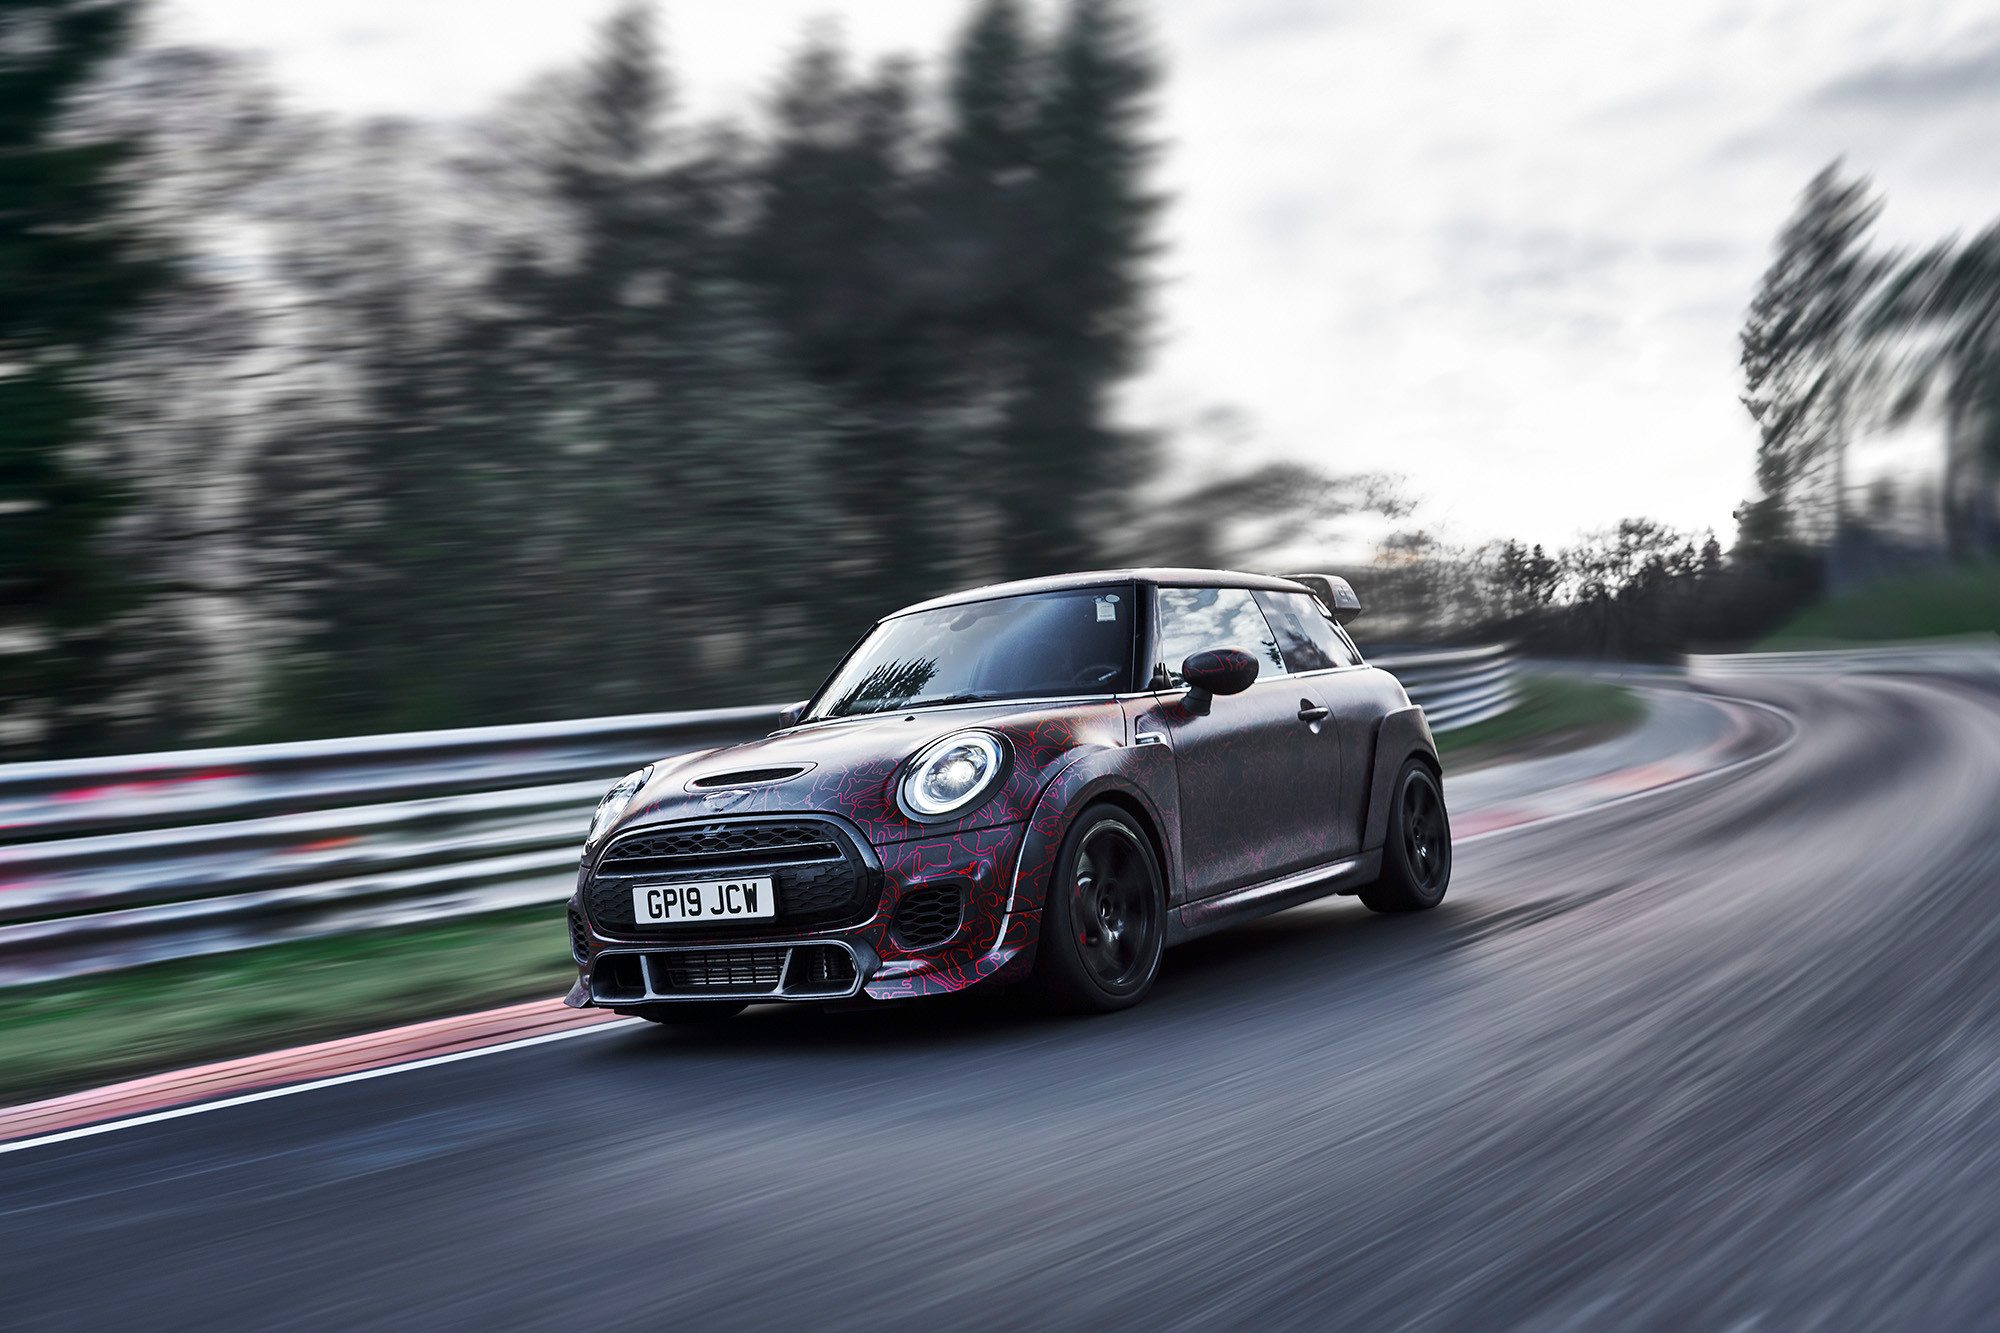 2020 Mini John Cooper Works GP to Make Grand Prix Entrance in L.A.